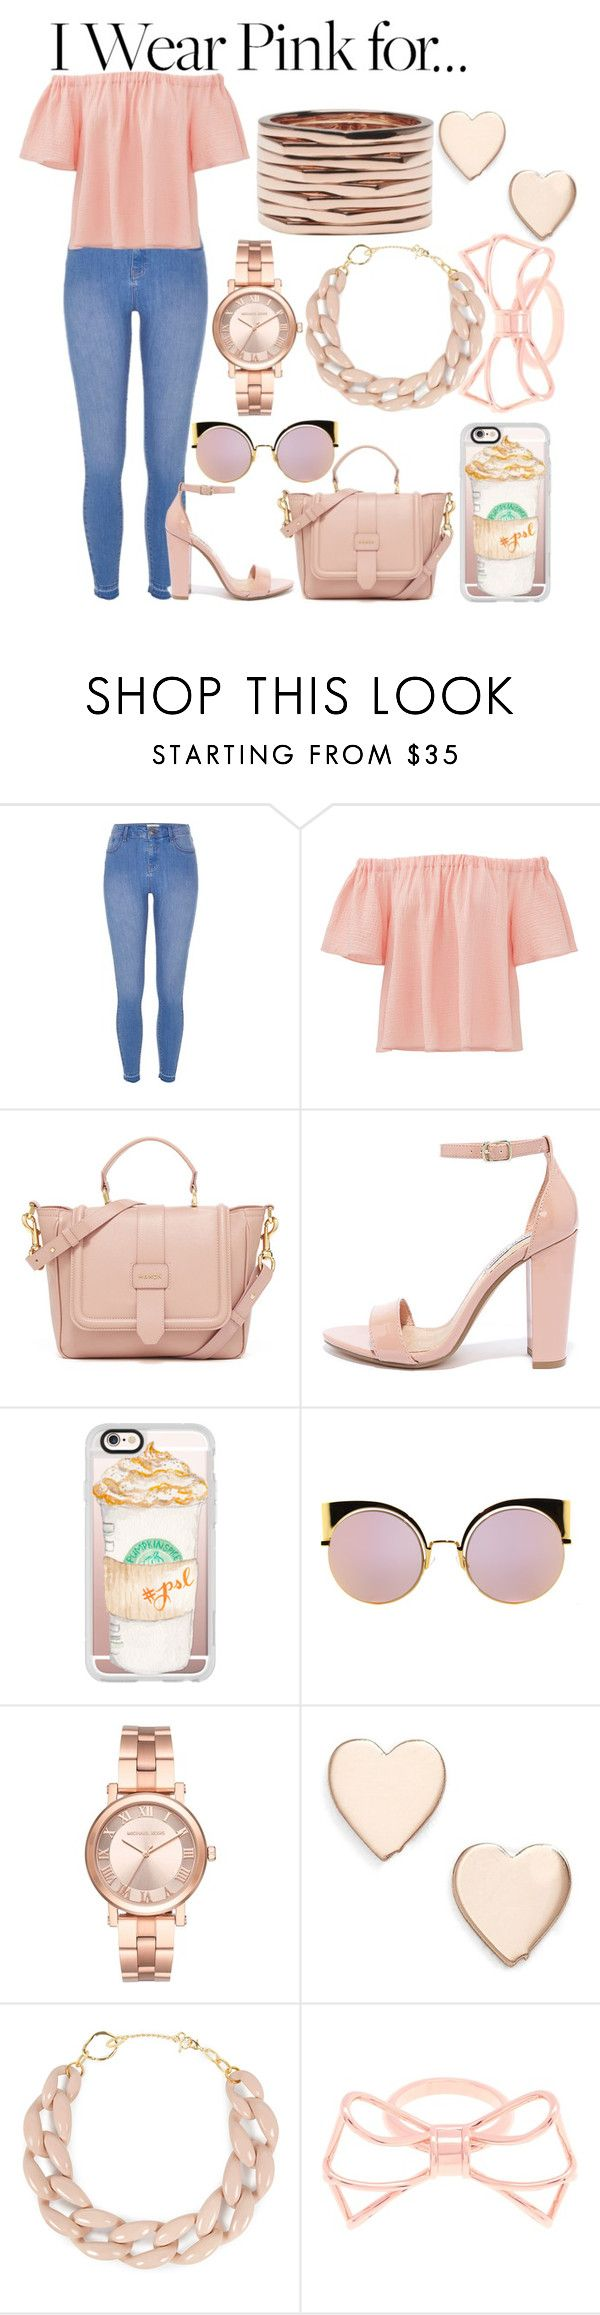 """Pink pride"" by emilia-love-life ❤ liked on Polyvore featuring River Island, Rebecca Taylor, Steve Madden, Casetify, Fendi, Michael Kors, Poppy Finch, DIANA BROUSSARD, Ted Baker and Repossi"